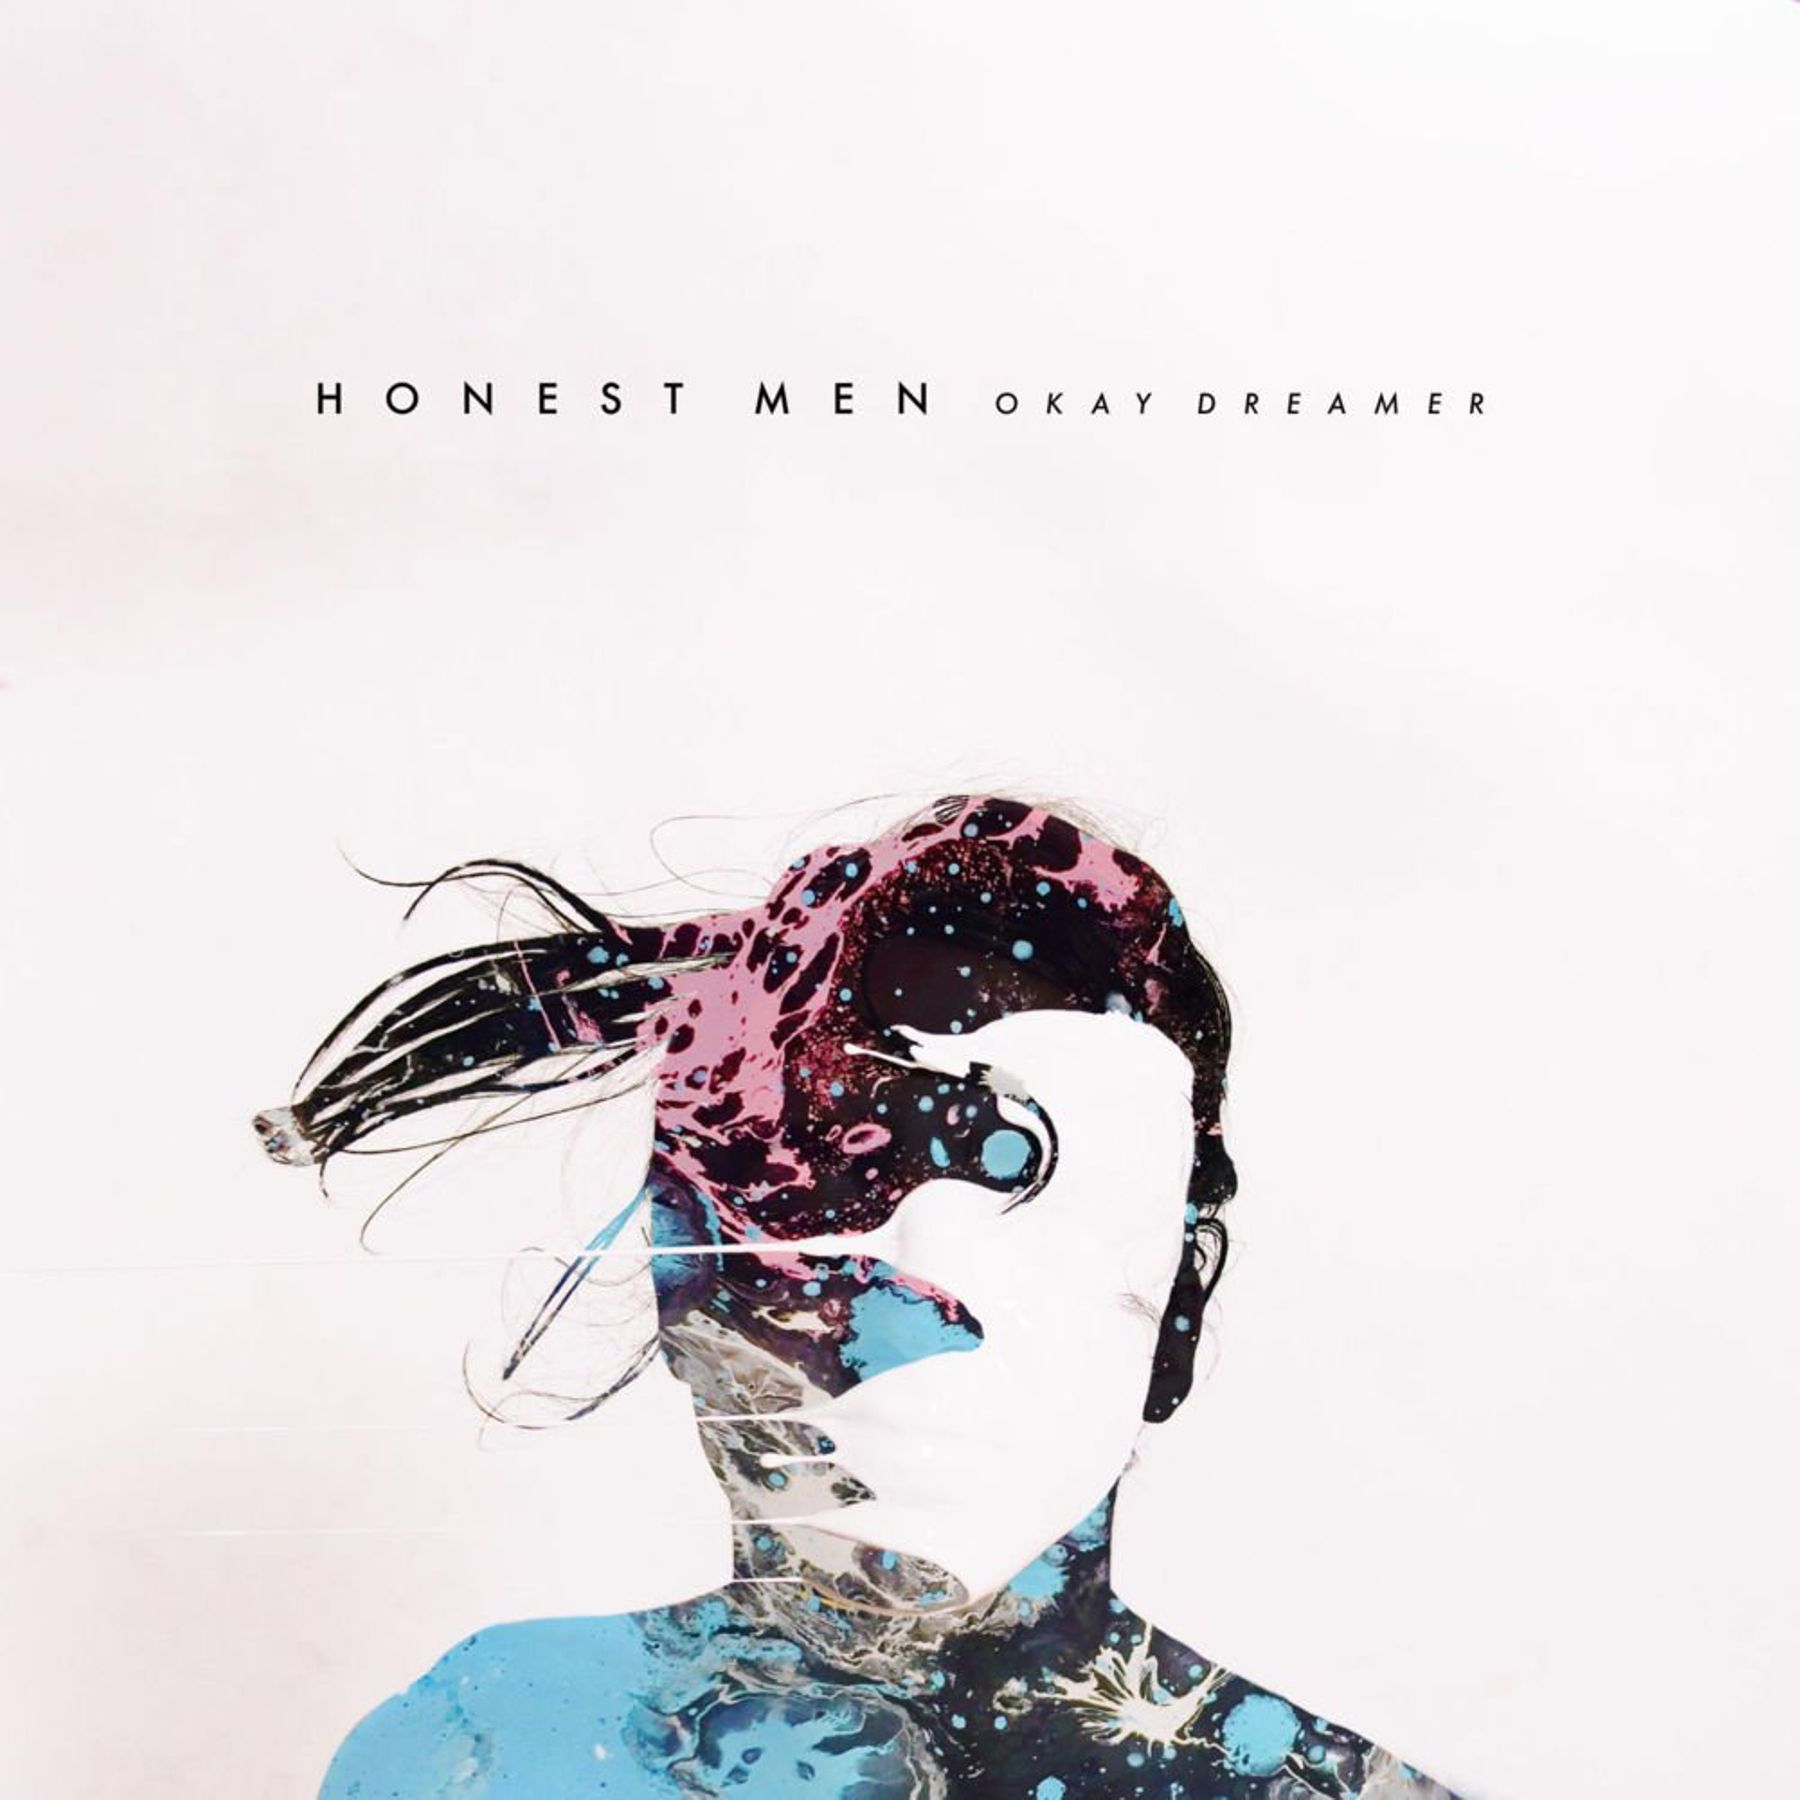 Honest Men - Zachary Solomon: Drums, Keys, SynthsRecorded at Sound Emporium in Nashville, TN. Engineered by Jared Fox and Jacob Schrodt.